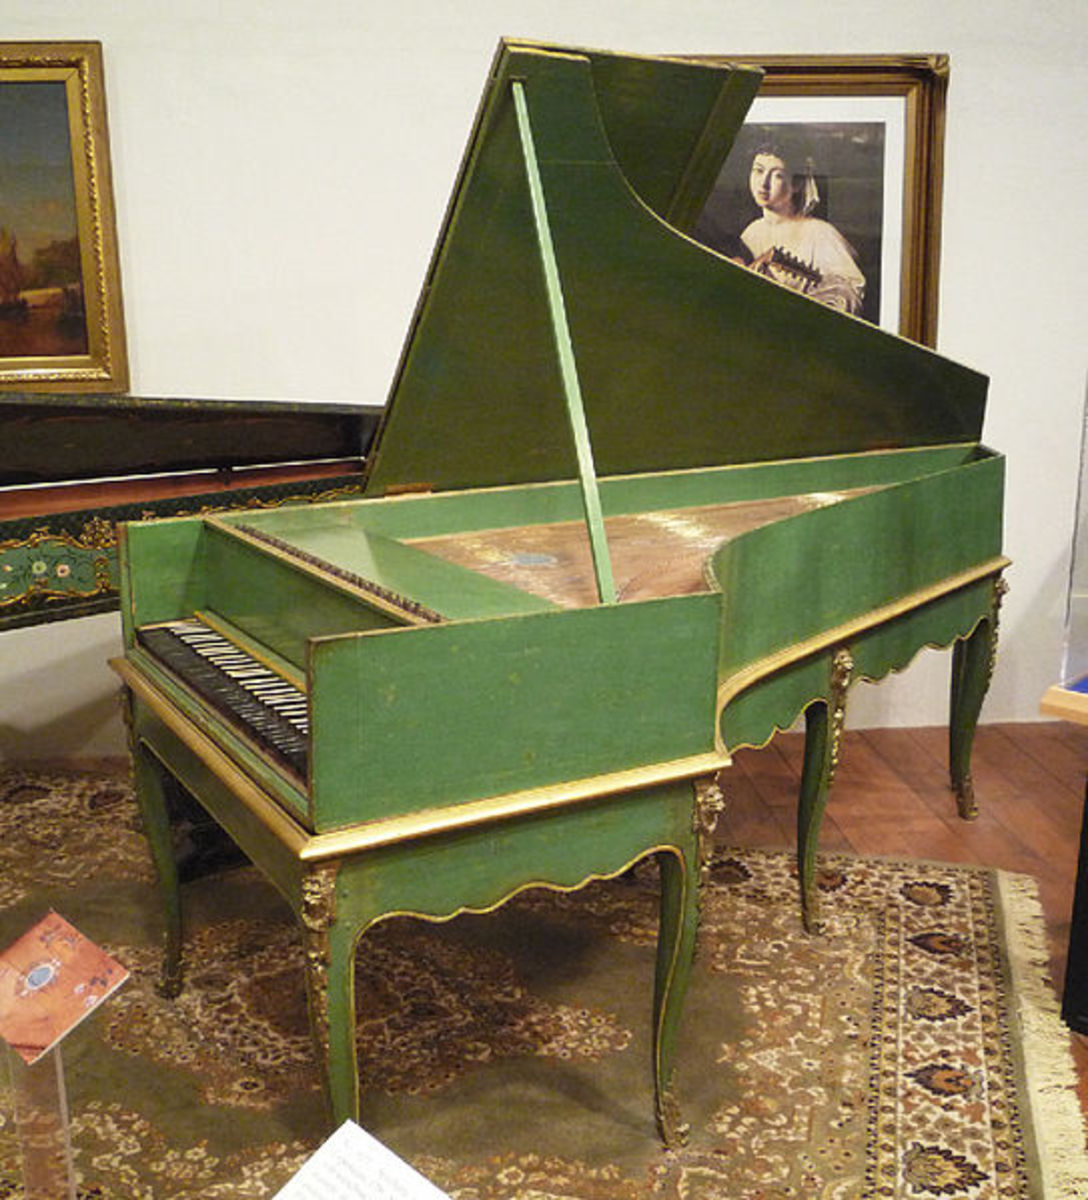 A Grand Piano built in 1781 following a design by the inventor of the piano, Bartolomeo Cristofori